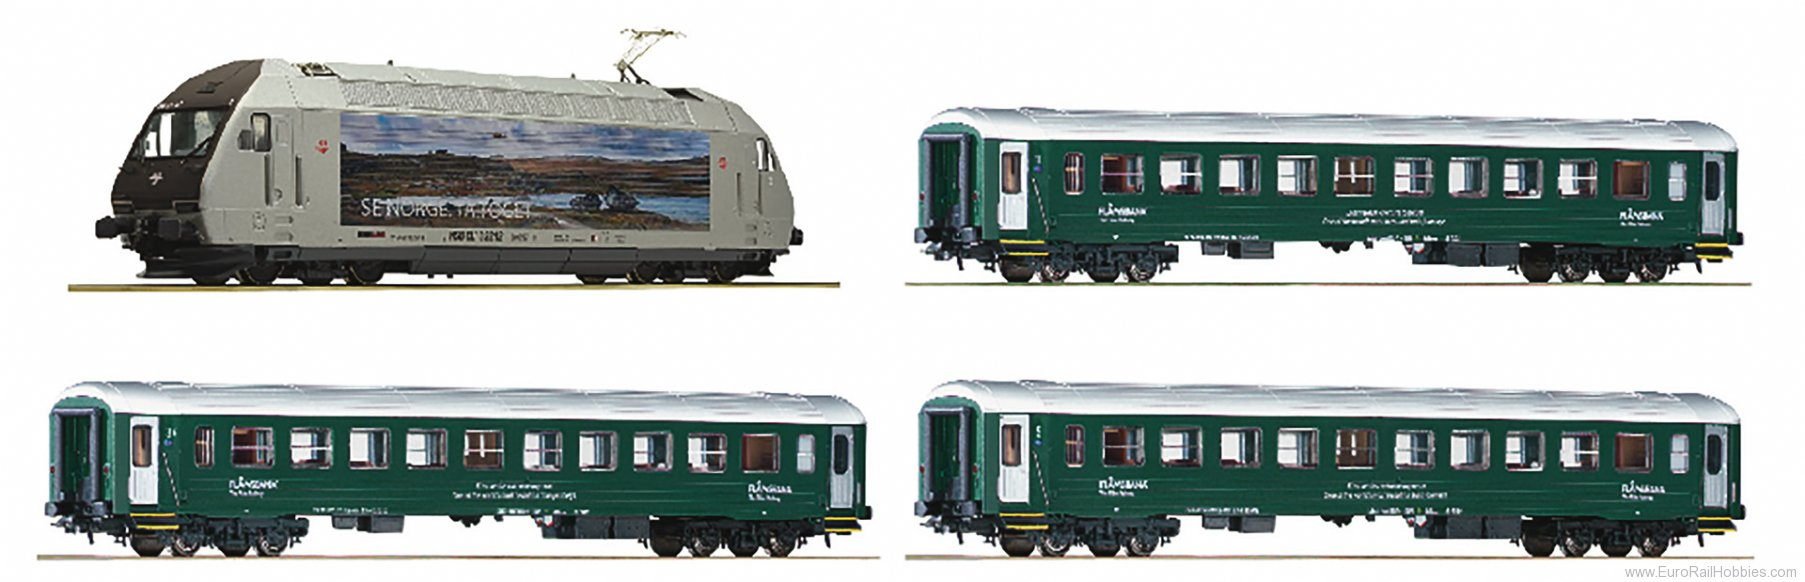 Roco 61451 Set: Electric locomotive EL 18 + passenger ca